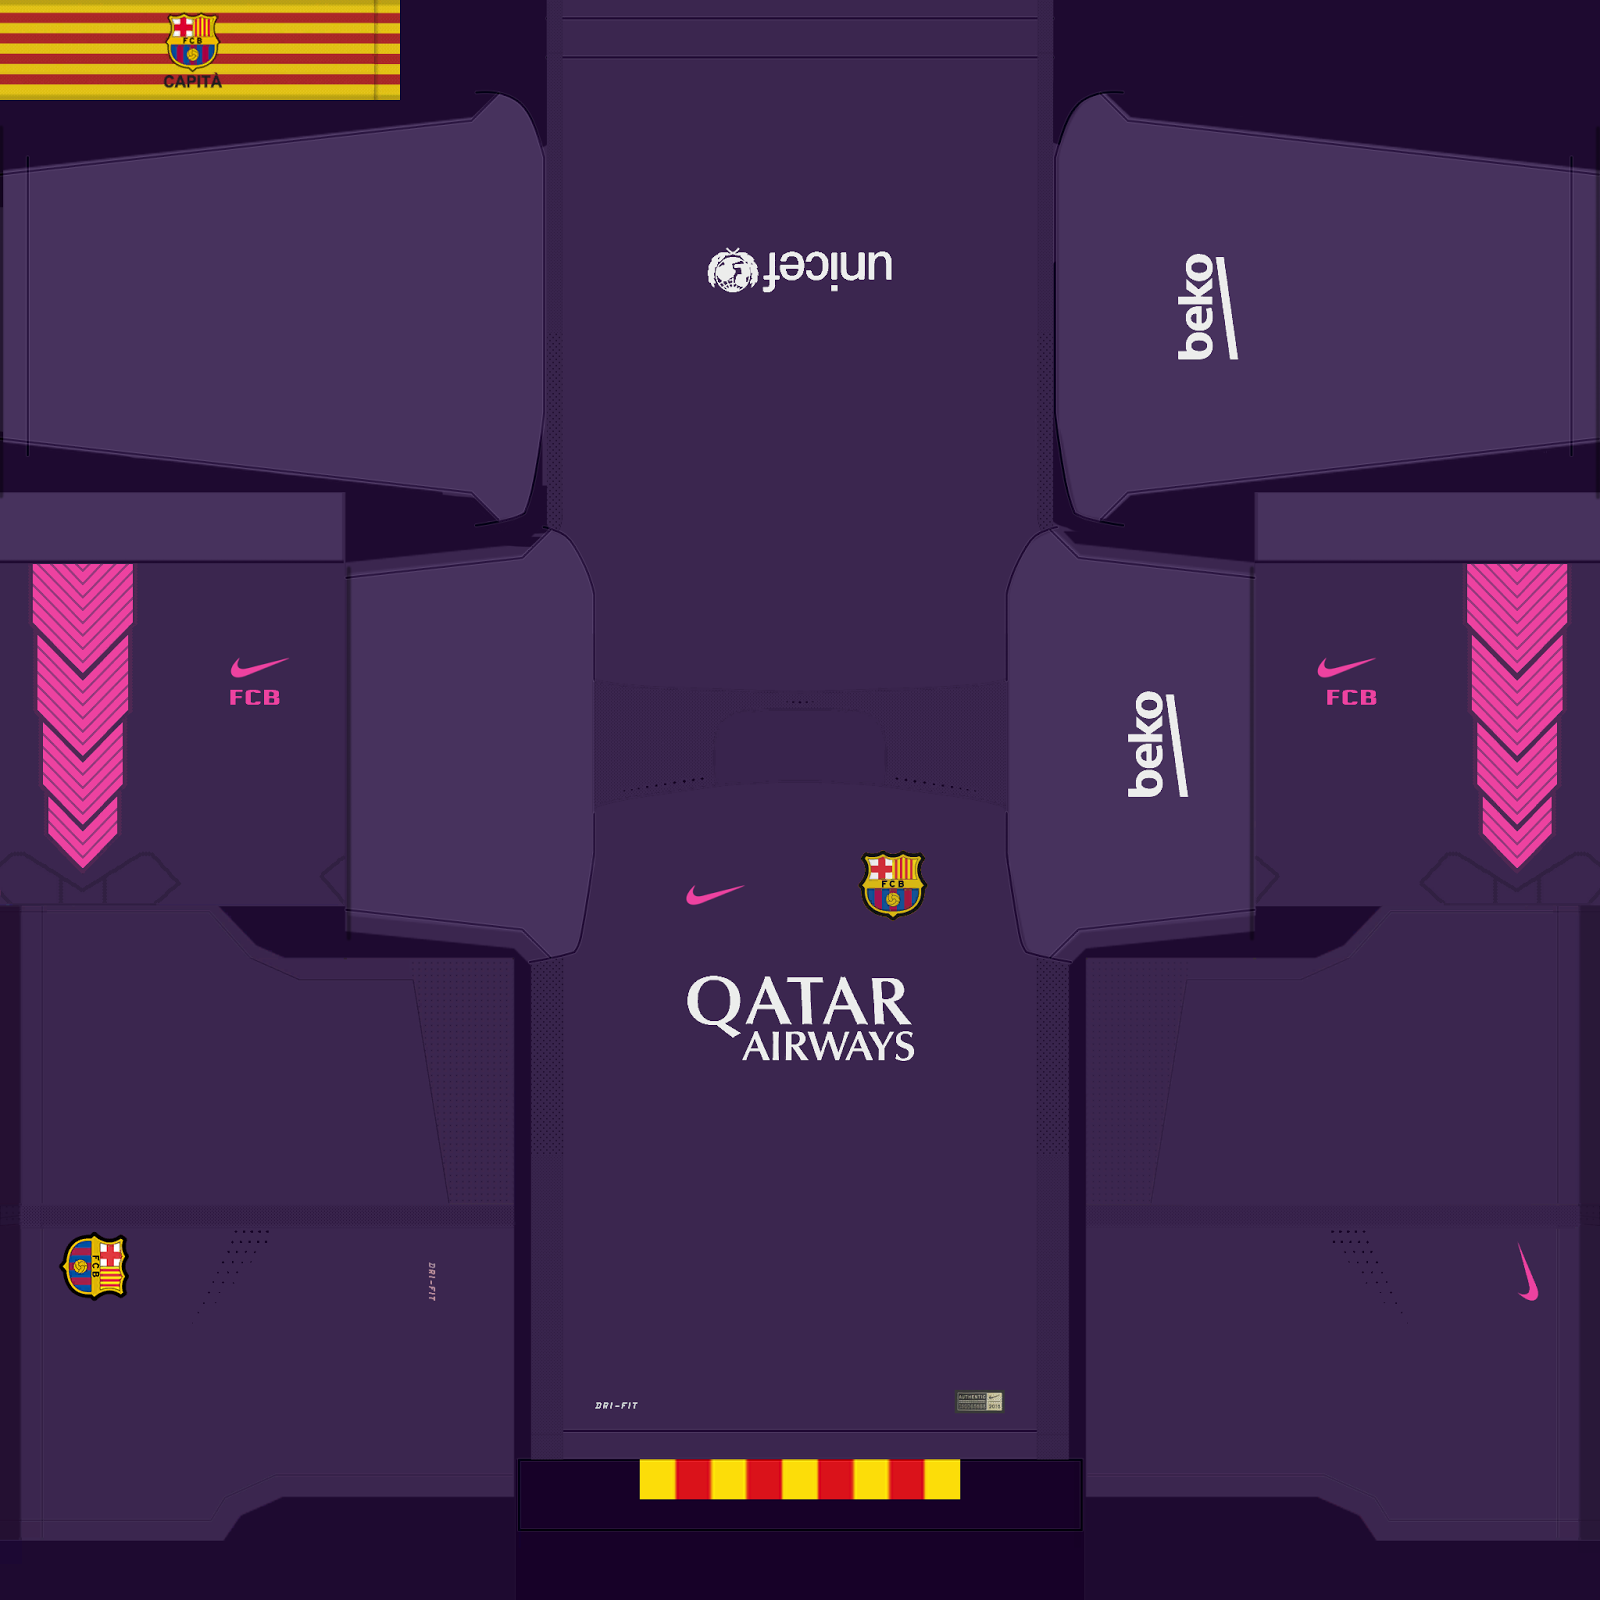 Fc Barcelona Kit 2015 Related Keywords & Suggestions - Fc Barcelona ...